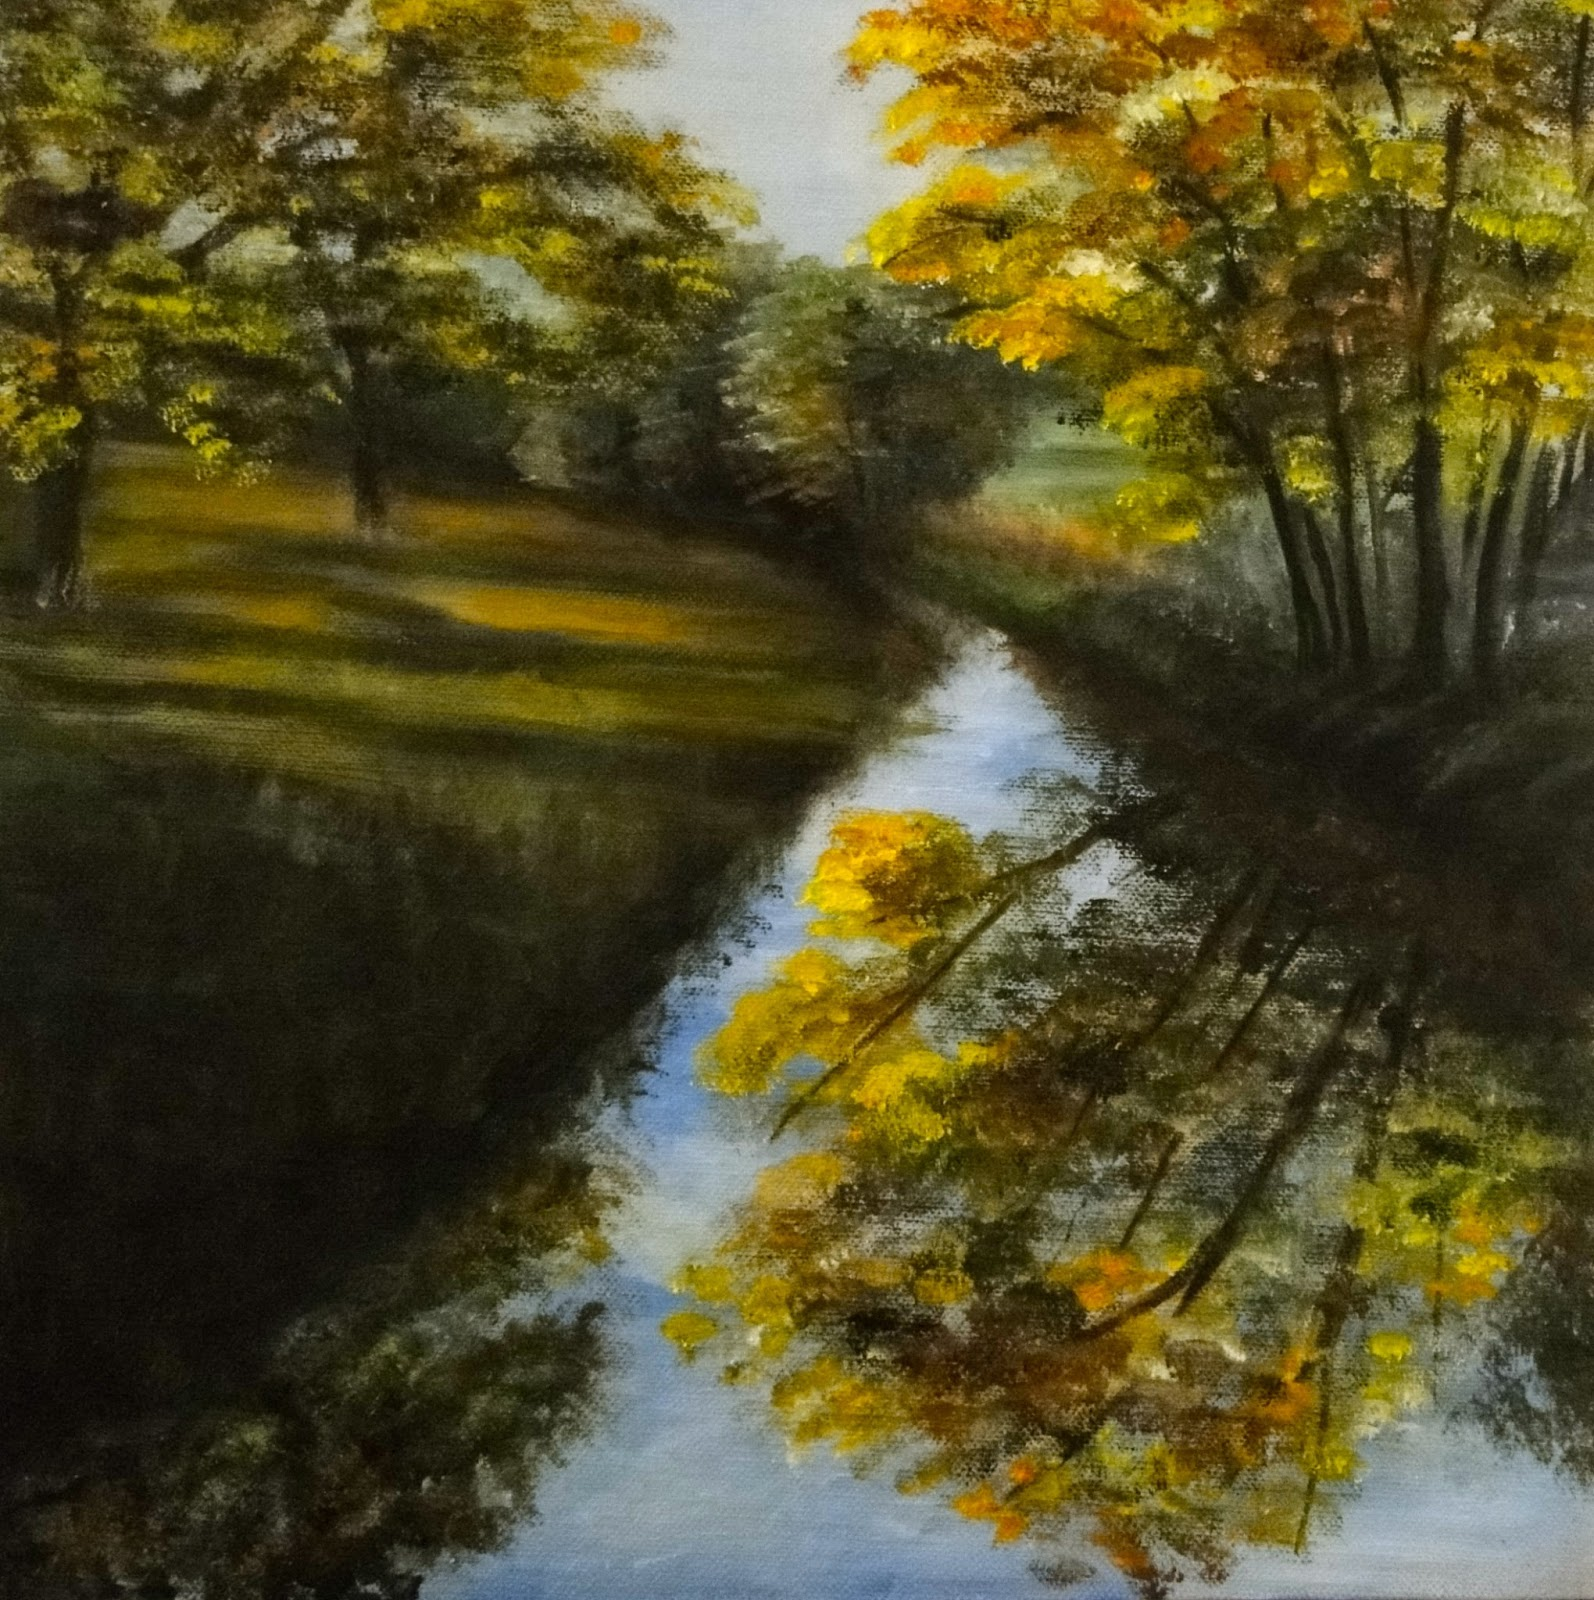 Oil painting of autumn trees, river and landscape